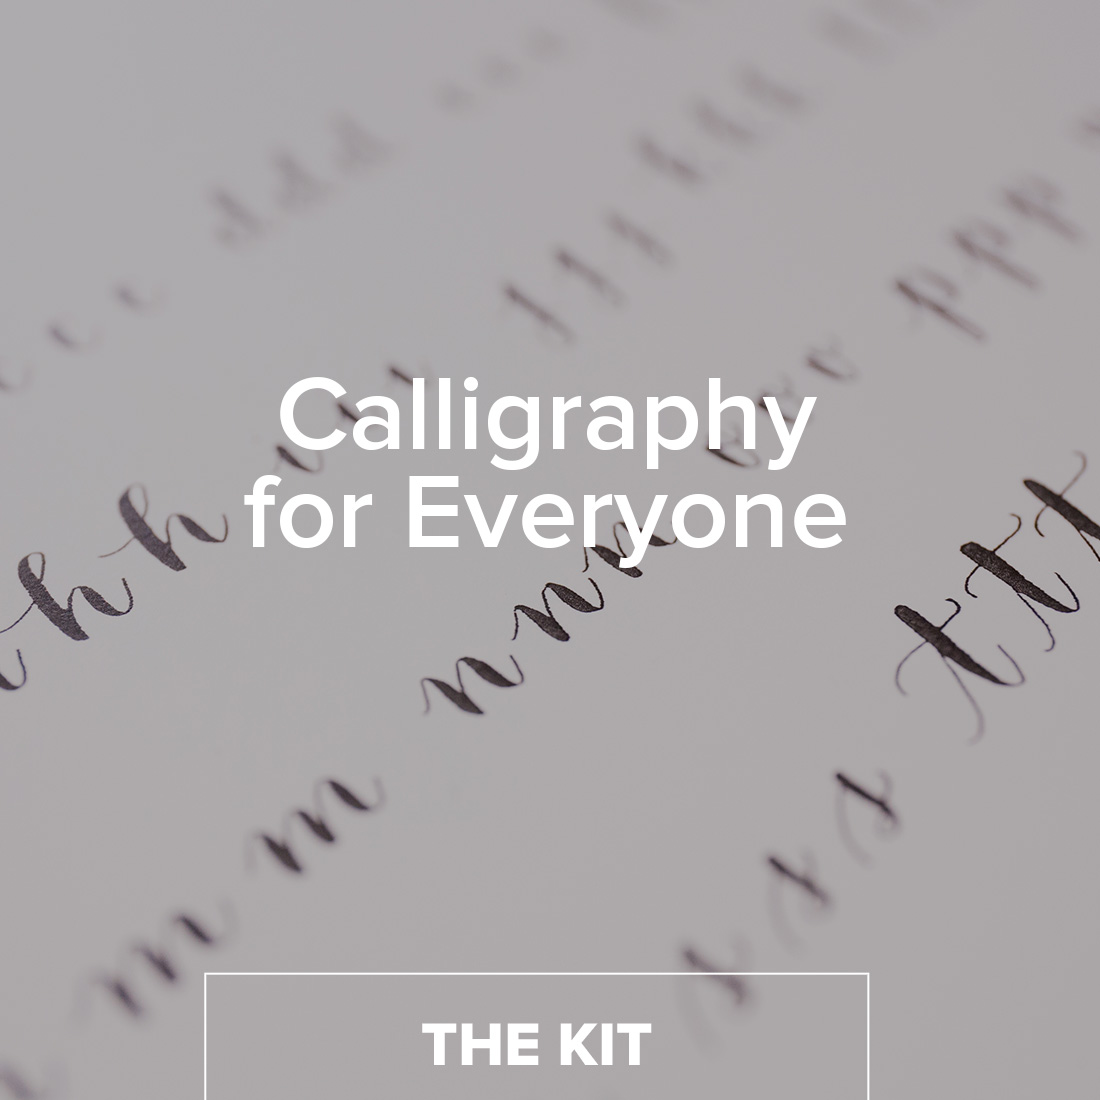 Calligraphy 101 kit brit co shop creative products Calligraphy 101